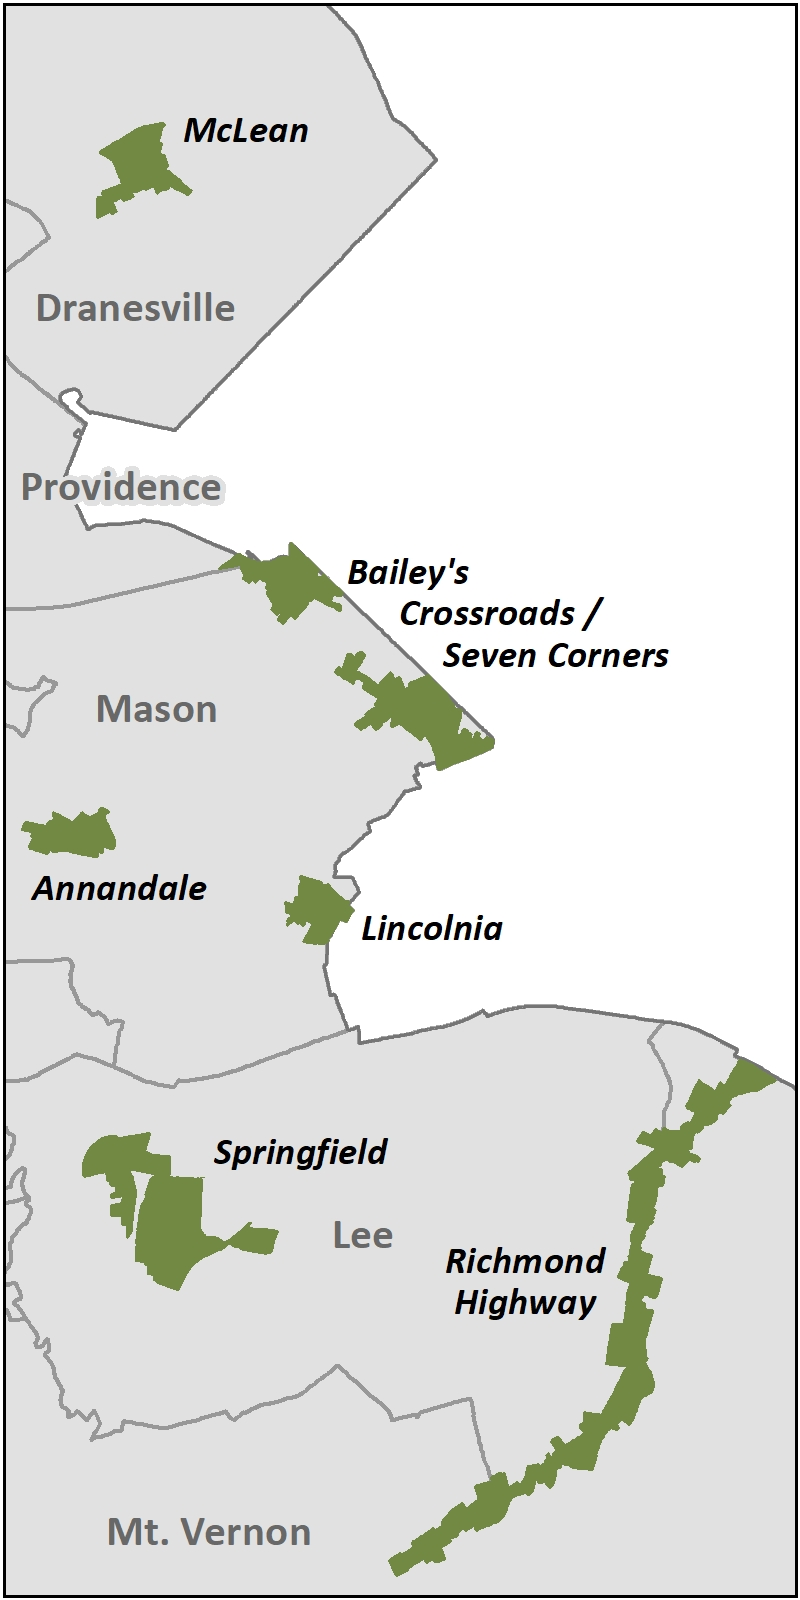 Map of the locations of the Economic Incentive Program Areas